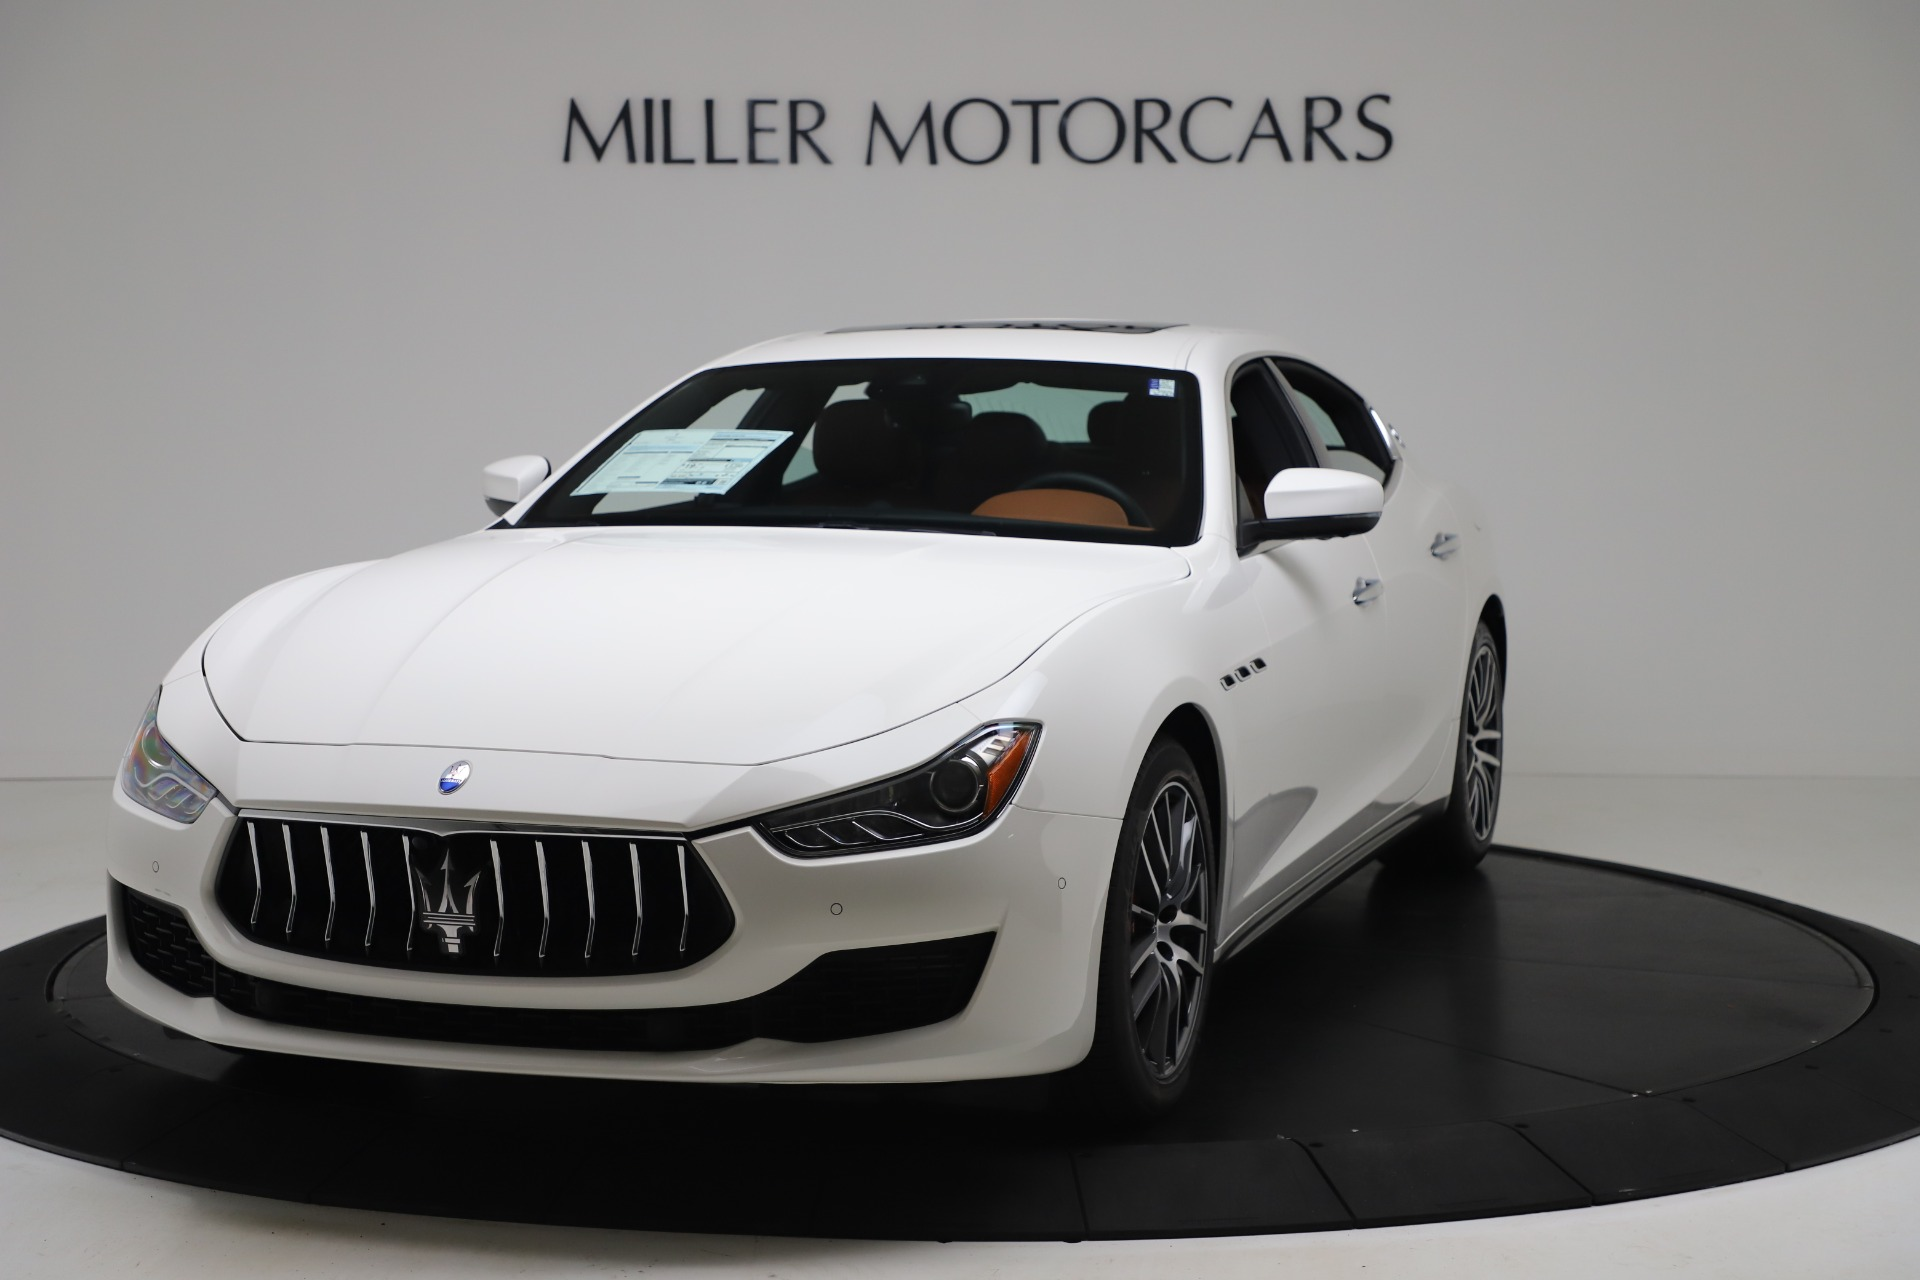 New 2020 Maserati Ghibli S Q4 for sale $84,735 at Rolls-Royce Motor Cars Greenwich in Greenwich CT 06830 1